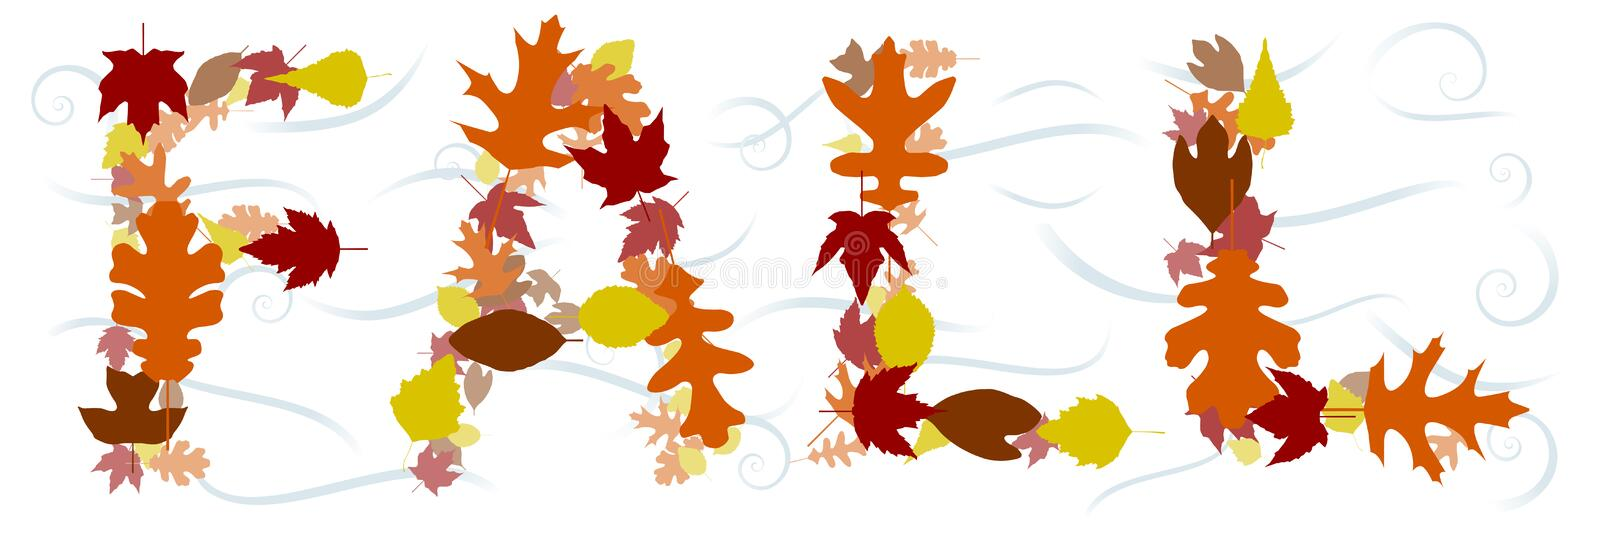 FALL in leaves. The word FALL composed of leaves and swirls of wind royalty free illustration